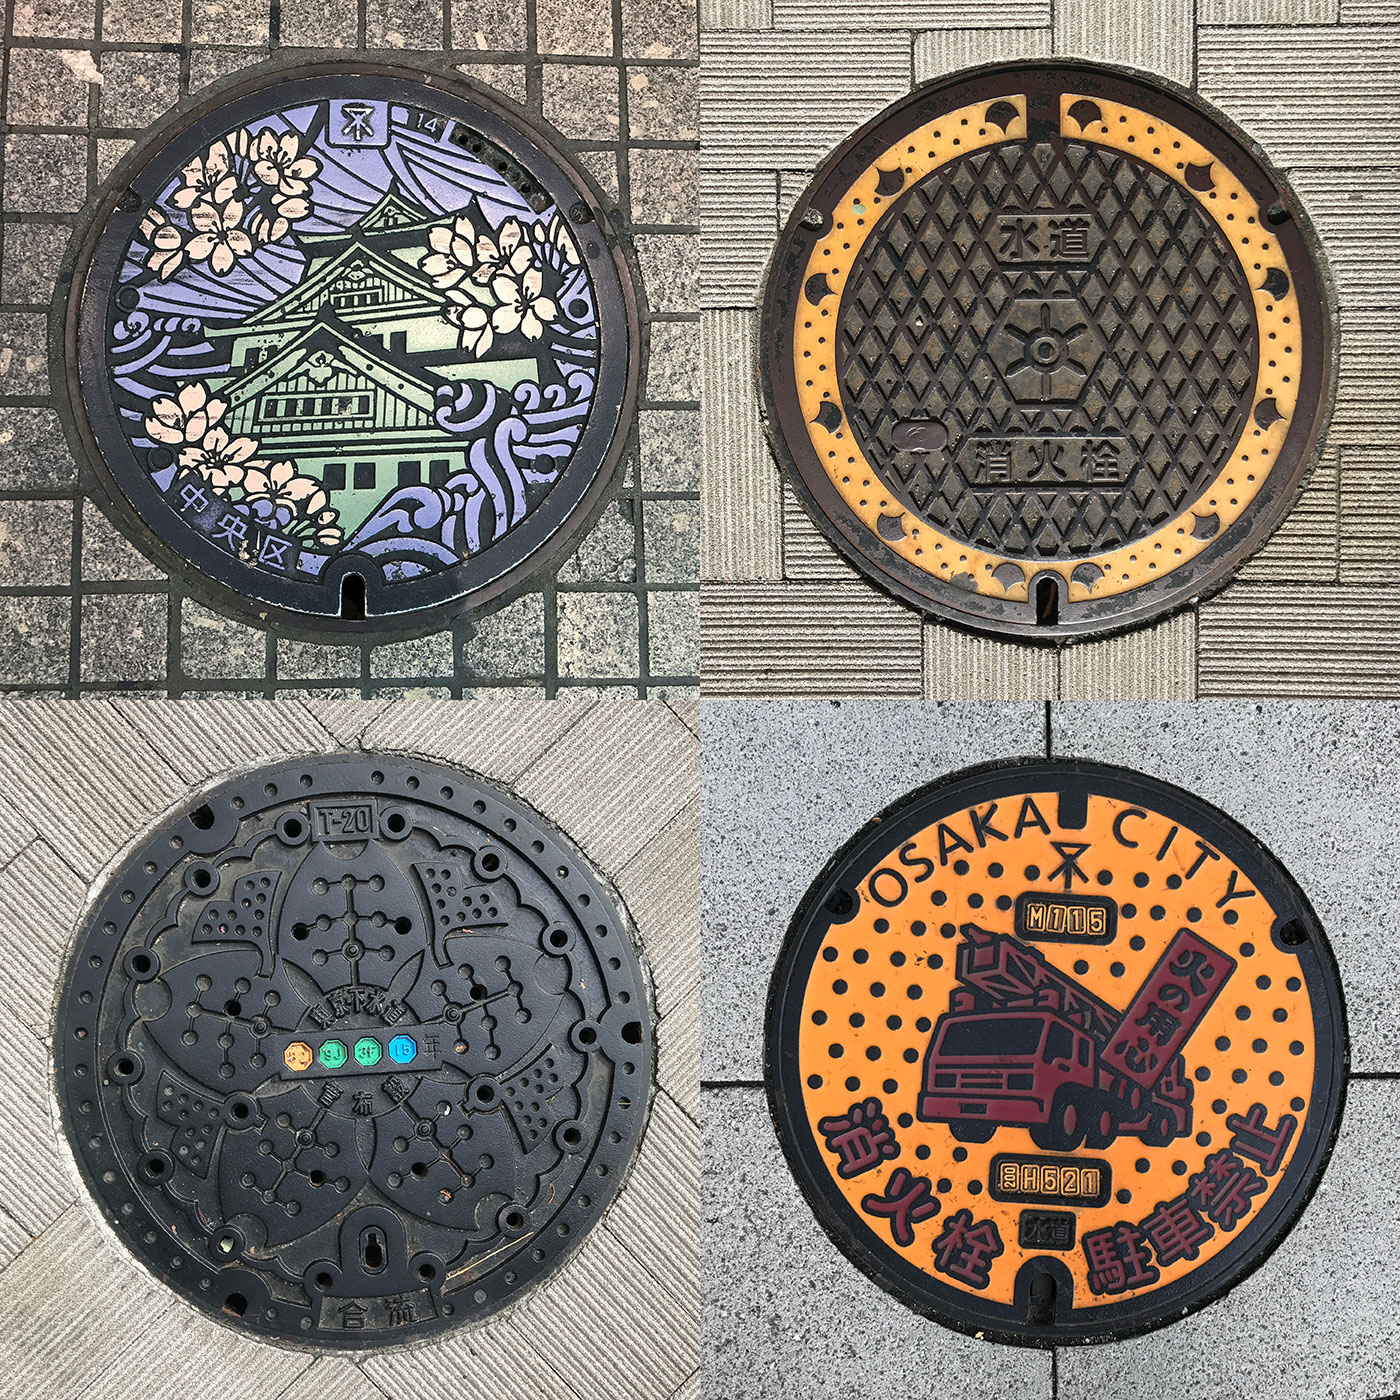 Manhole Covers of Japan